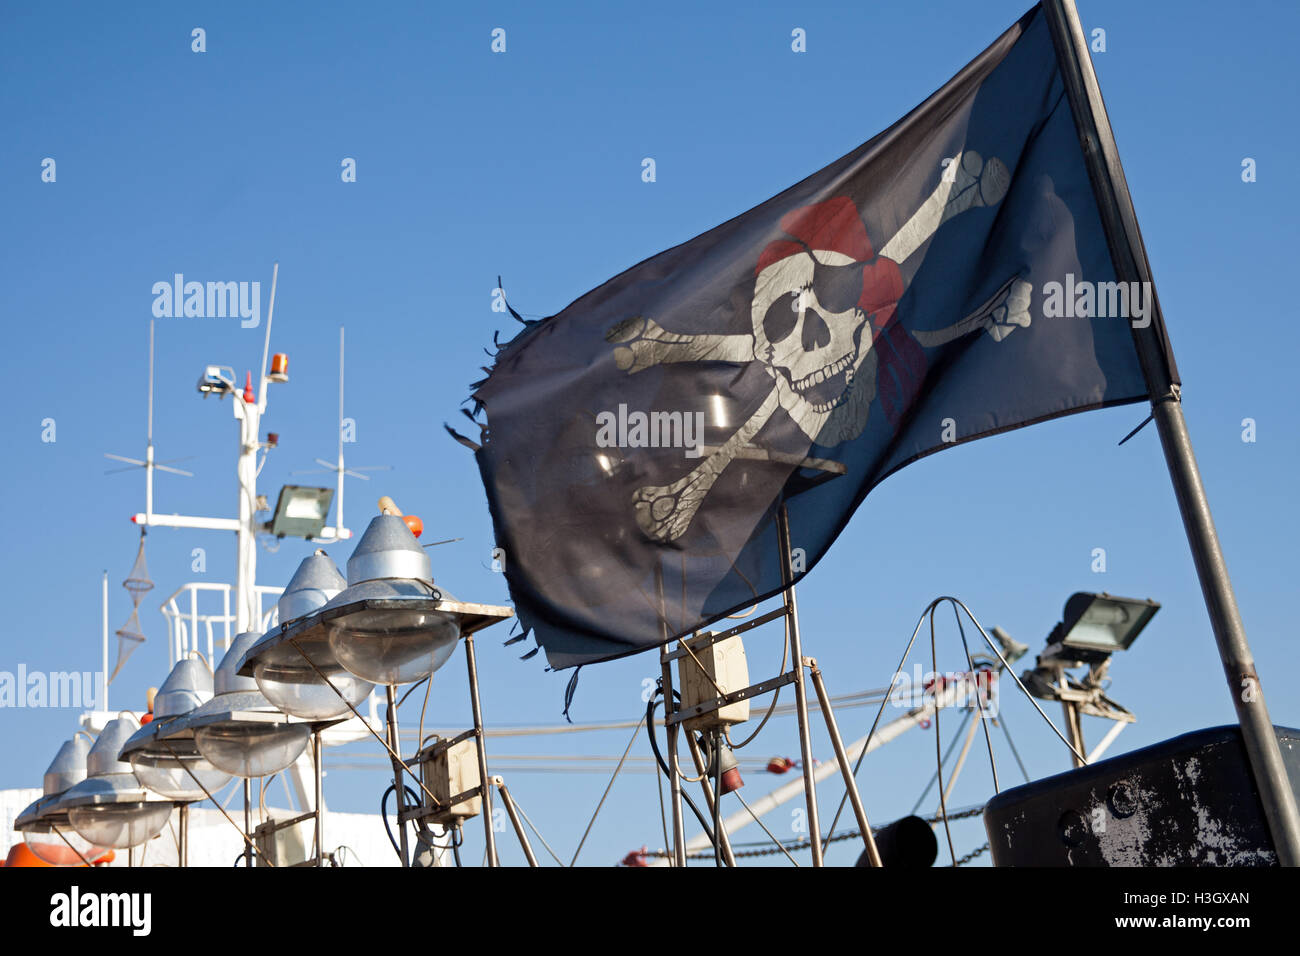 A fishing boat flying the jolly roger pirate's flag in Mithymna / Molivos in Lesbos / Lesvos in Greece. - Stock Image